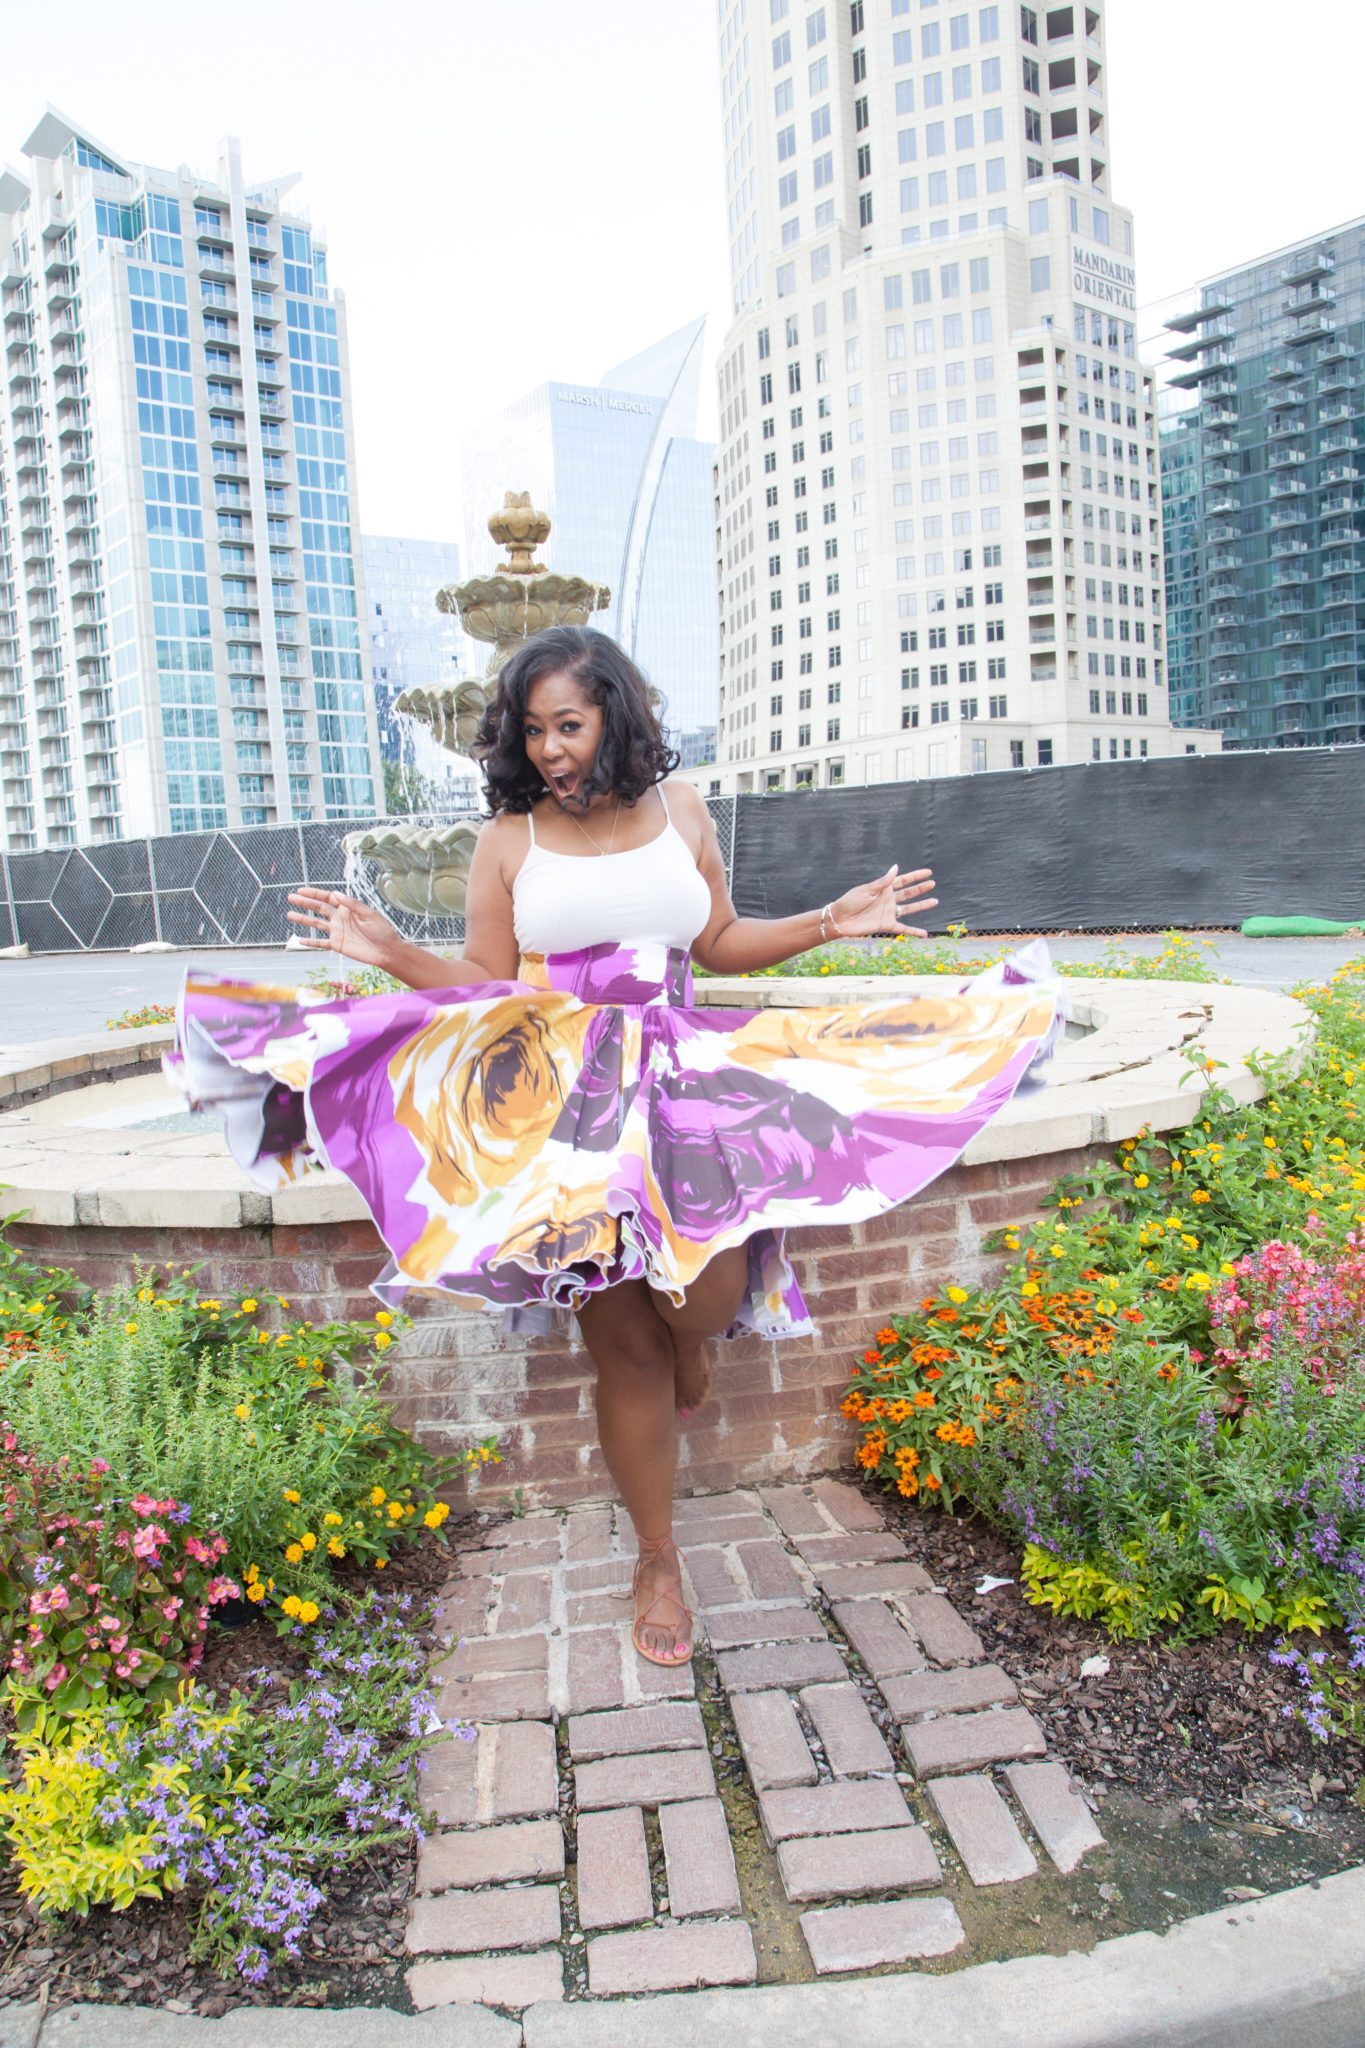 My Style: Floral Print Ball Skirt